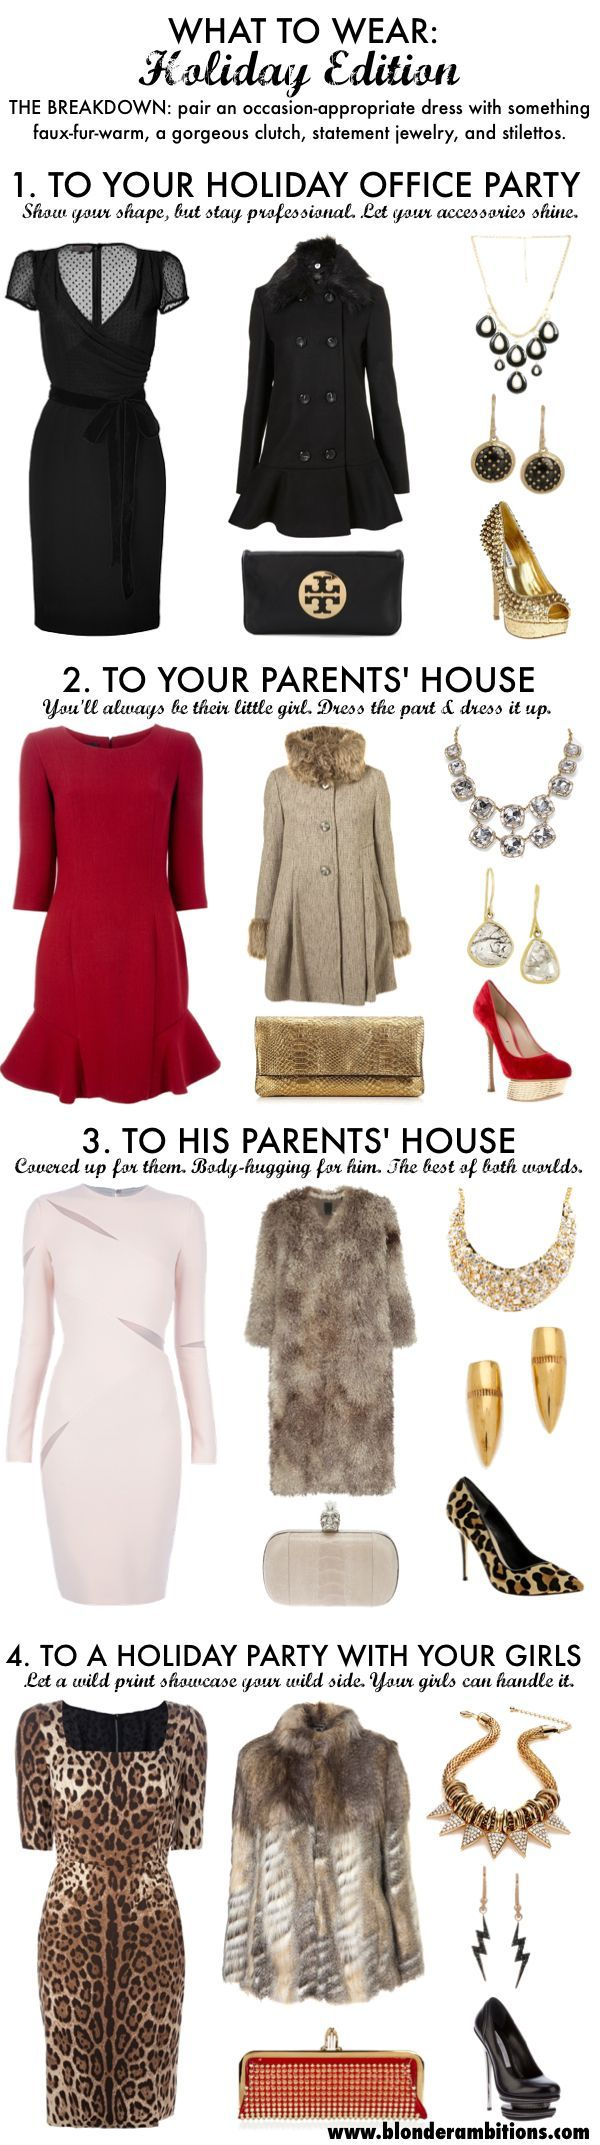 MUST HAVES - HOLIDAY EDITION | Women\'s Fashion Trends | Pinterest ...